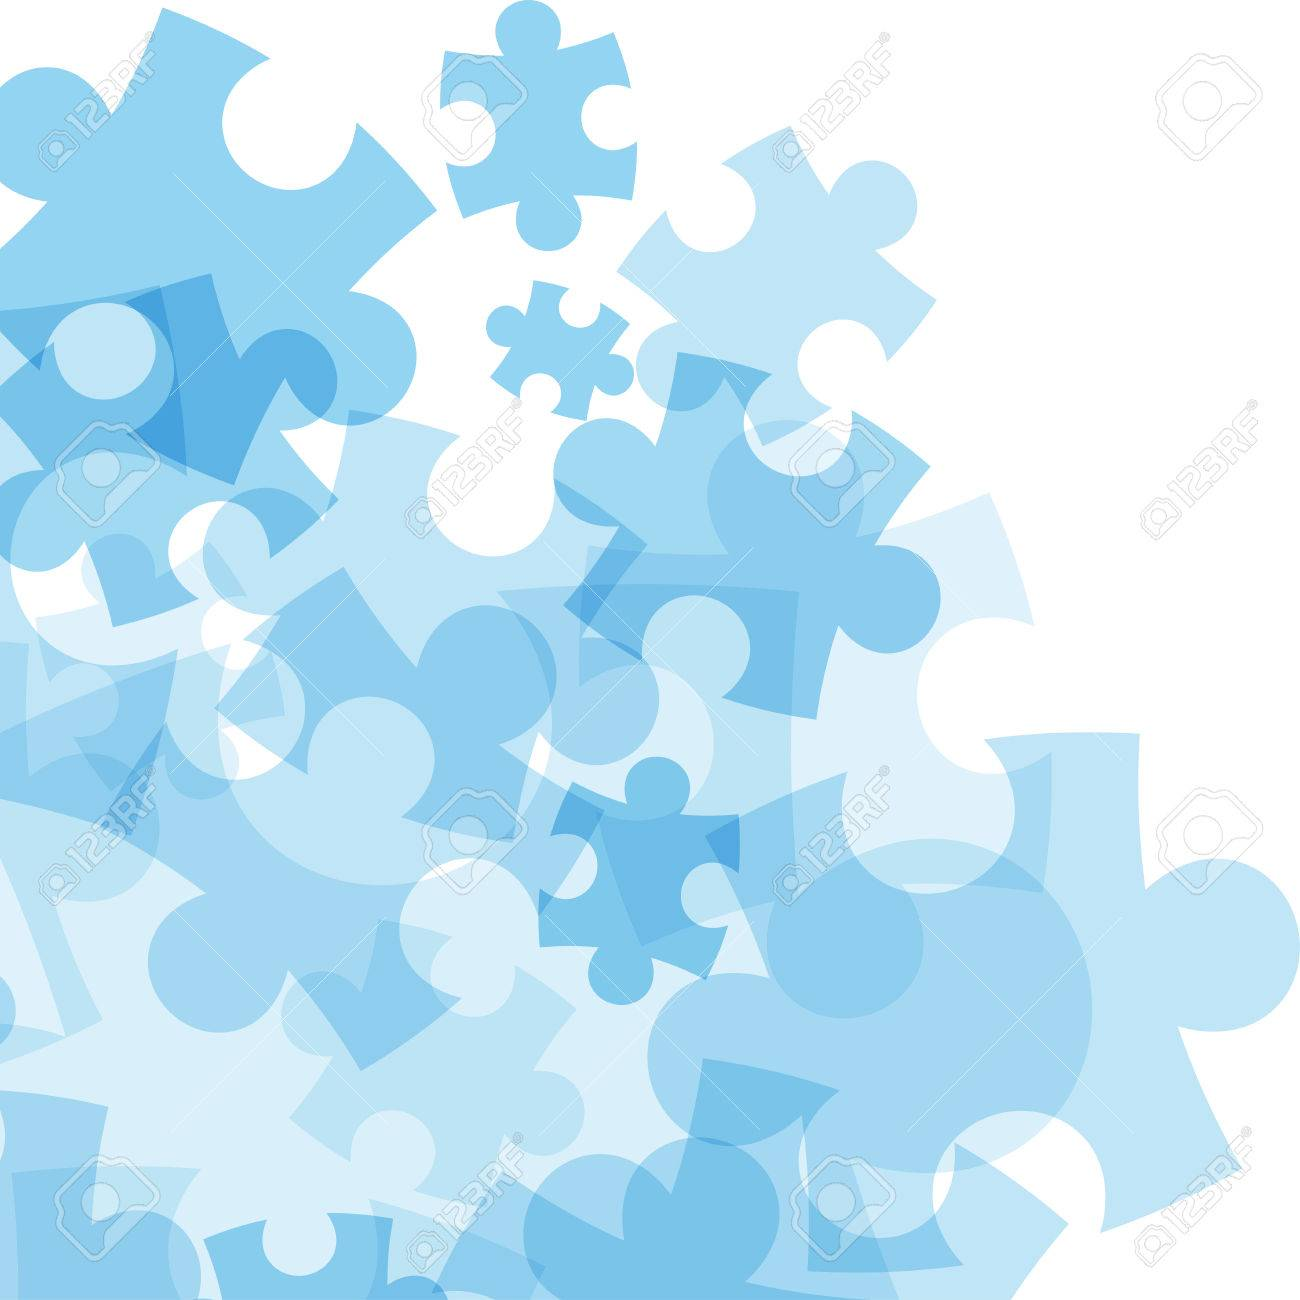 Abstract monocolor puzzle background. Vector graphic template. - 41742294